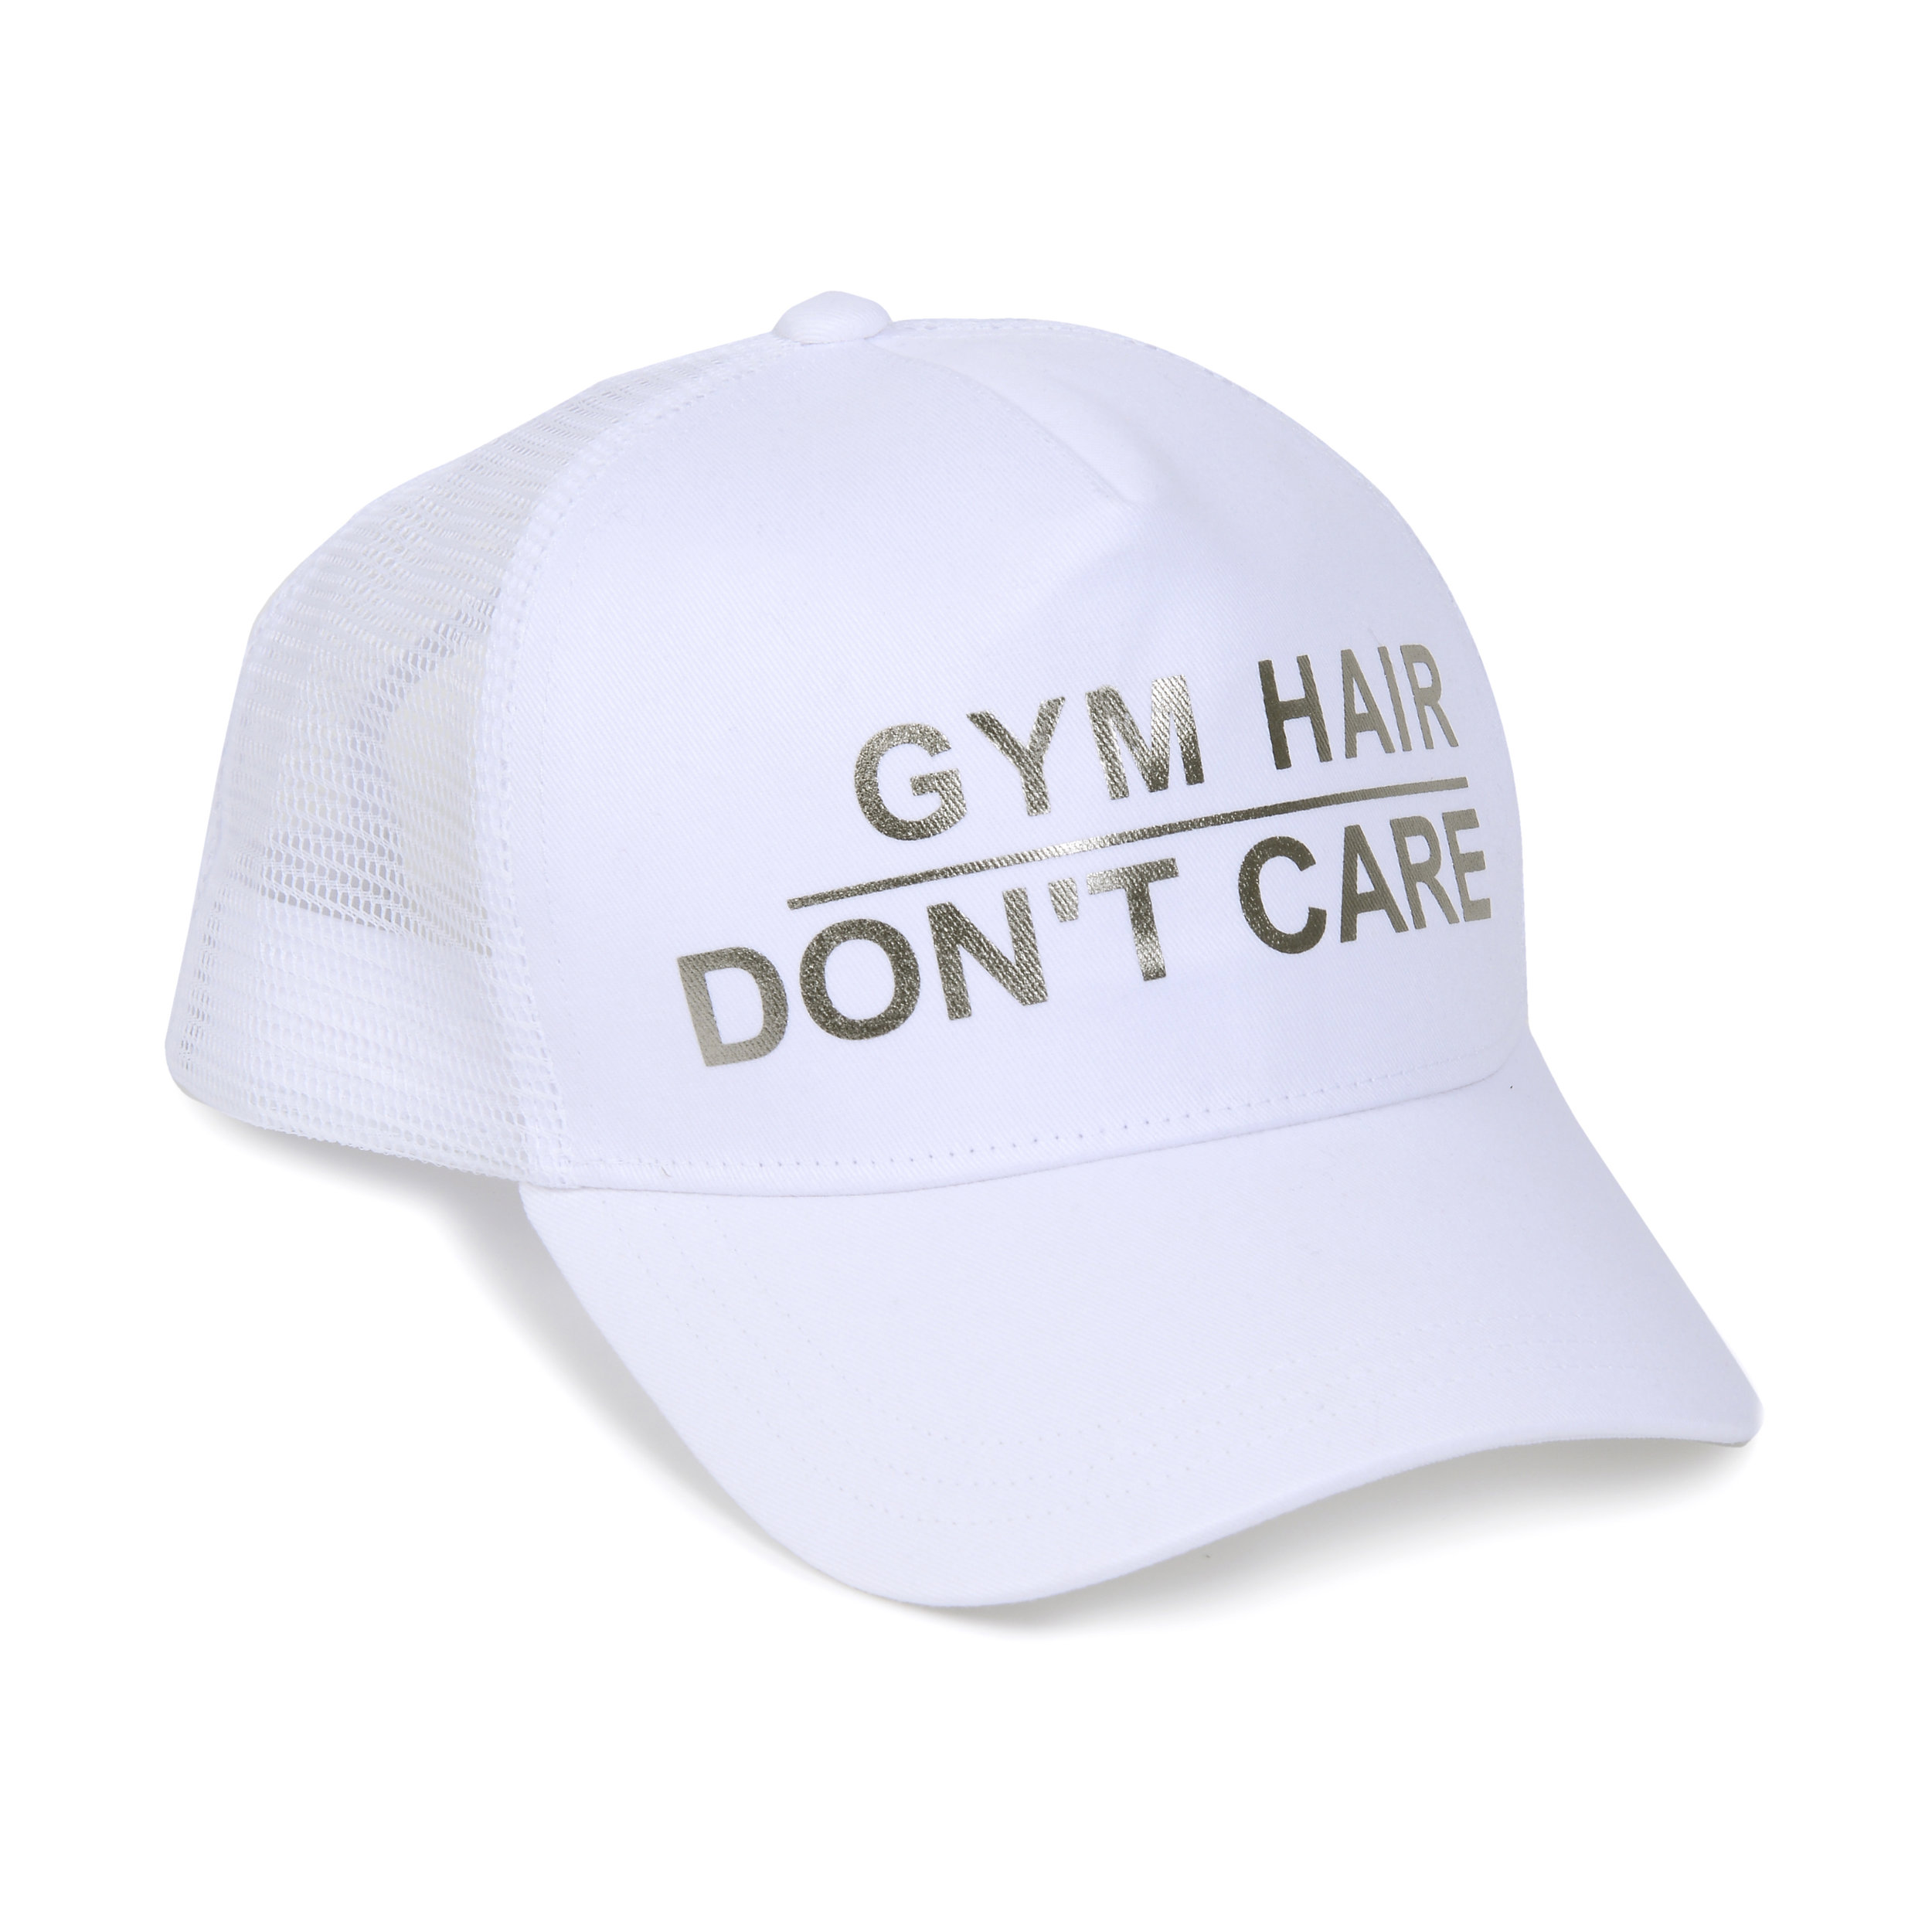 Trucker Hat - Gym Hair Don't Care.jpg